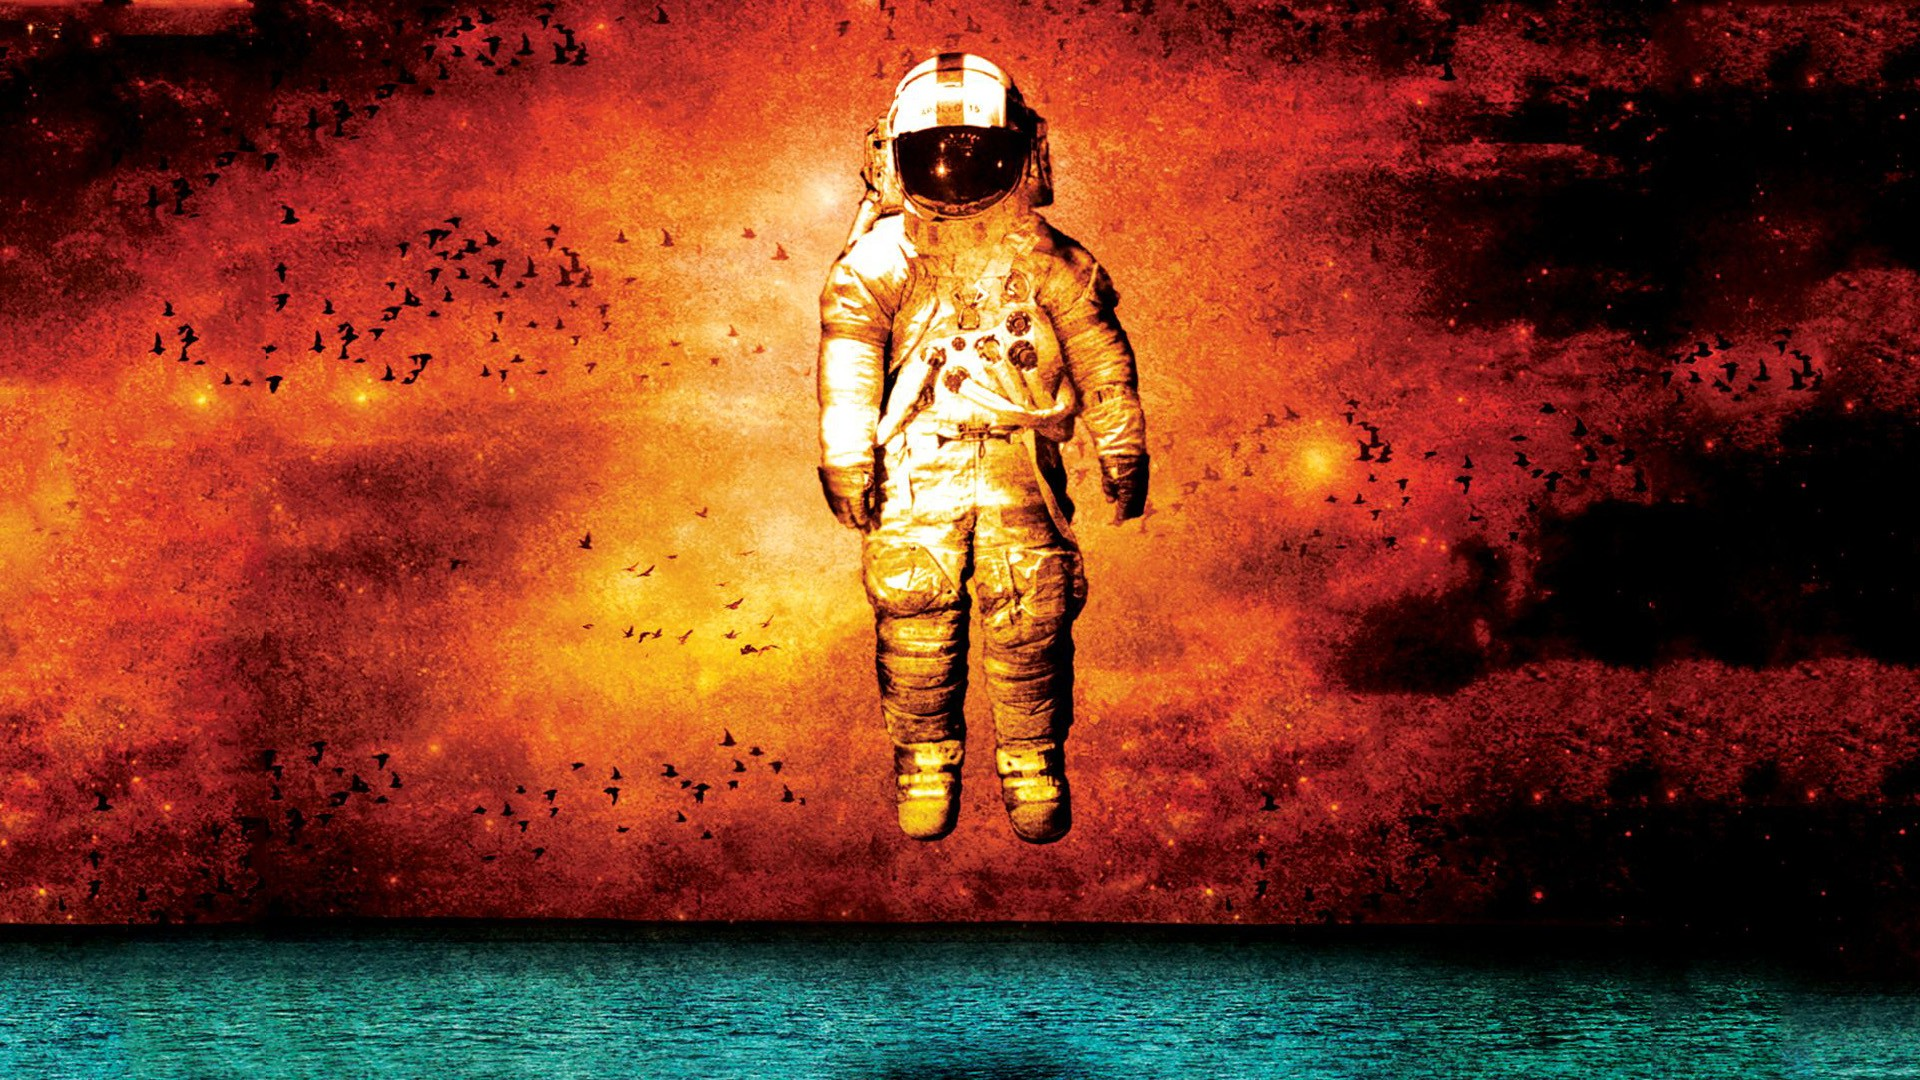 Brand New Deja Entendu Wallpaper - WallpaperSafari